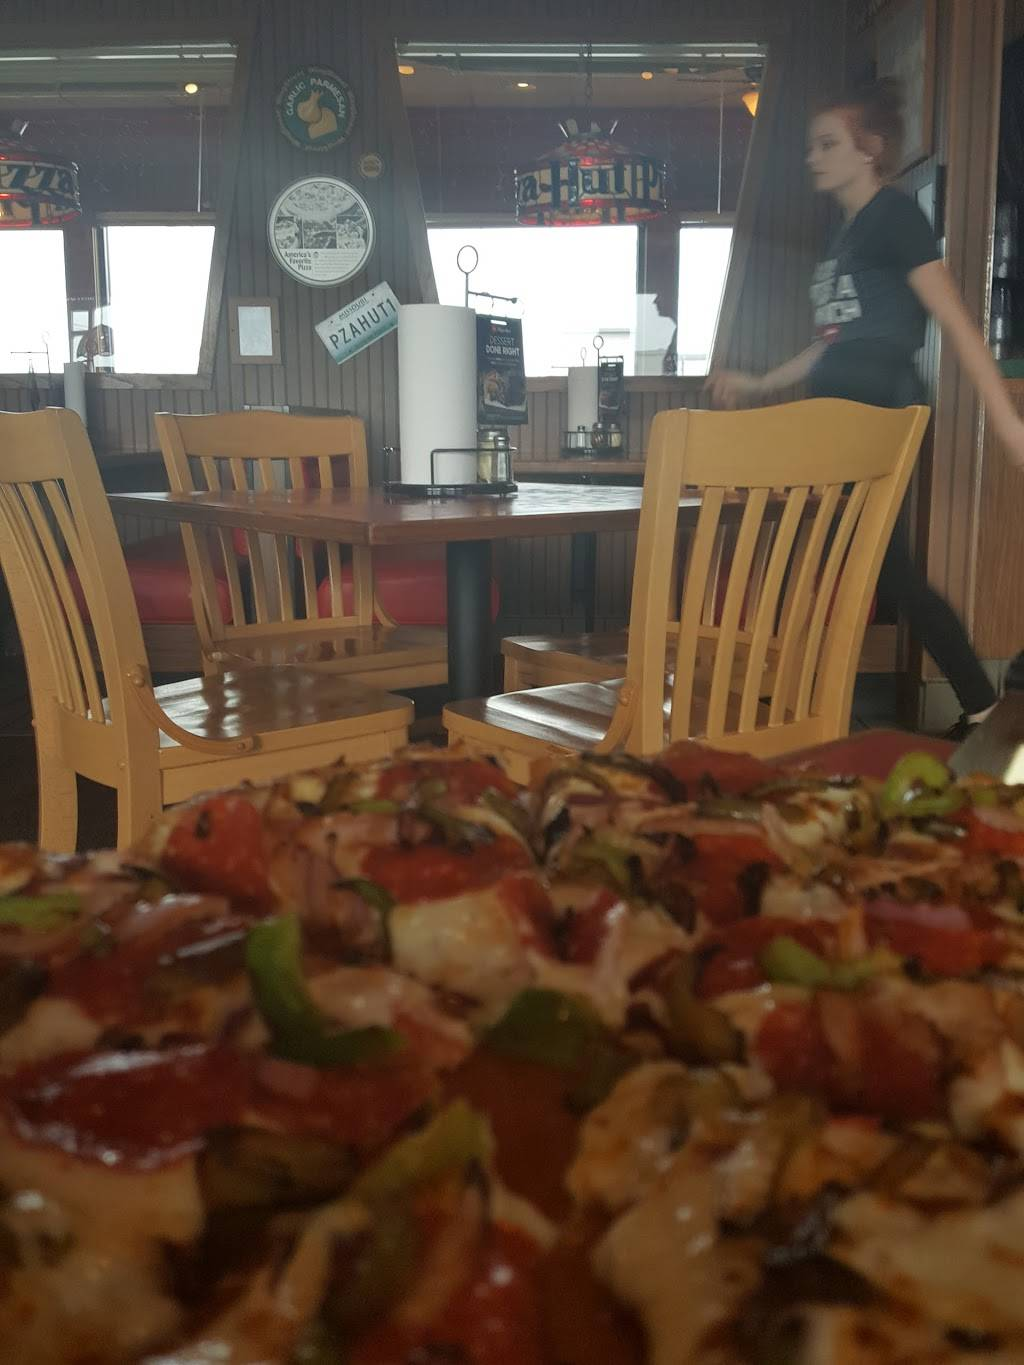 Pizza Hut   meal delivery   2028 S Elliott Ave, Aurora, MO 65605, USA   4176785185 OR +1 417-678-5185